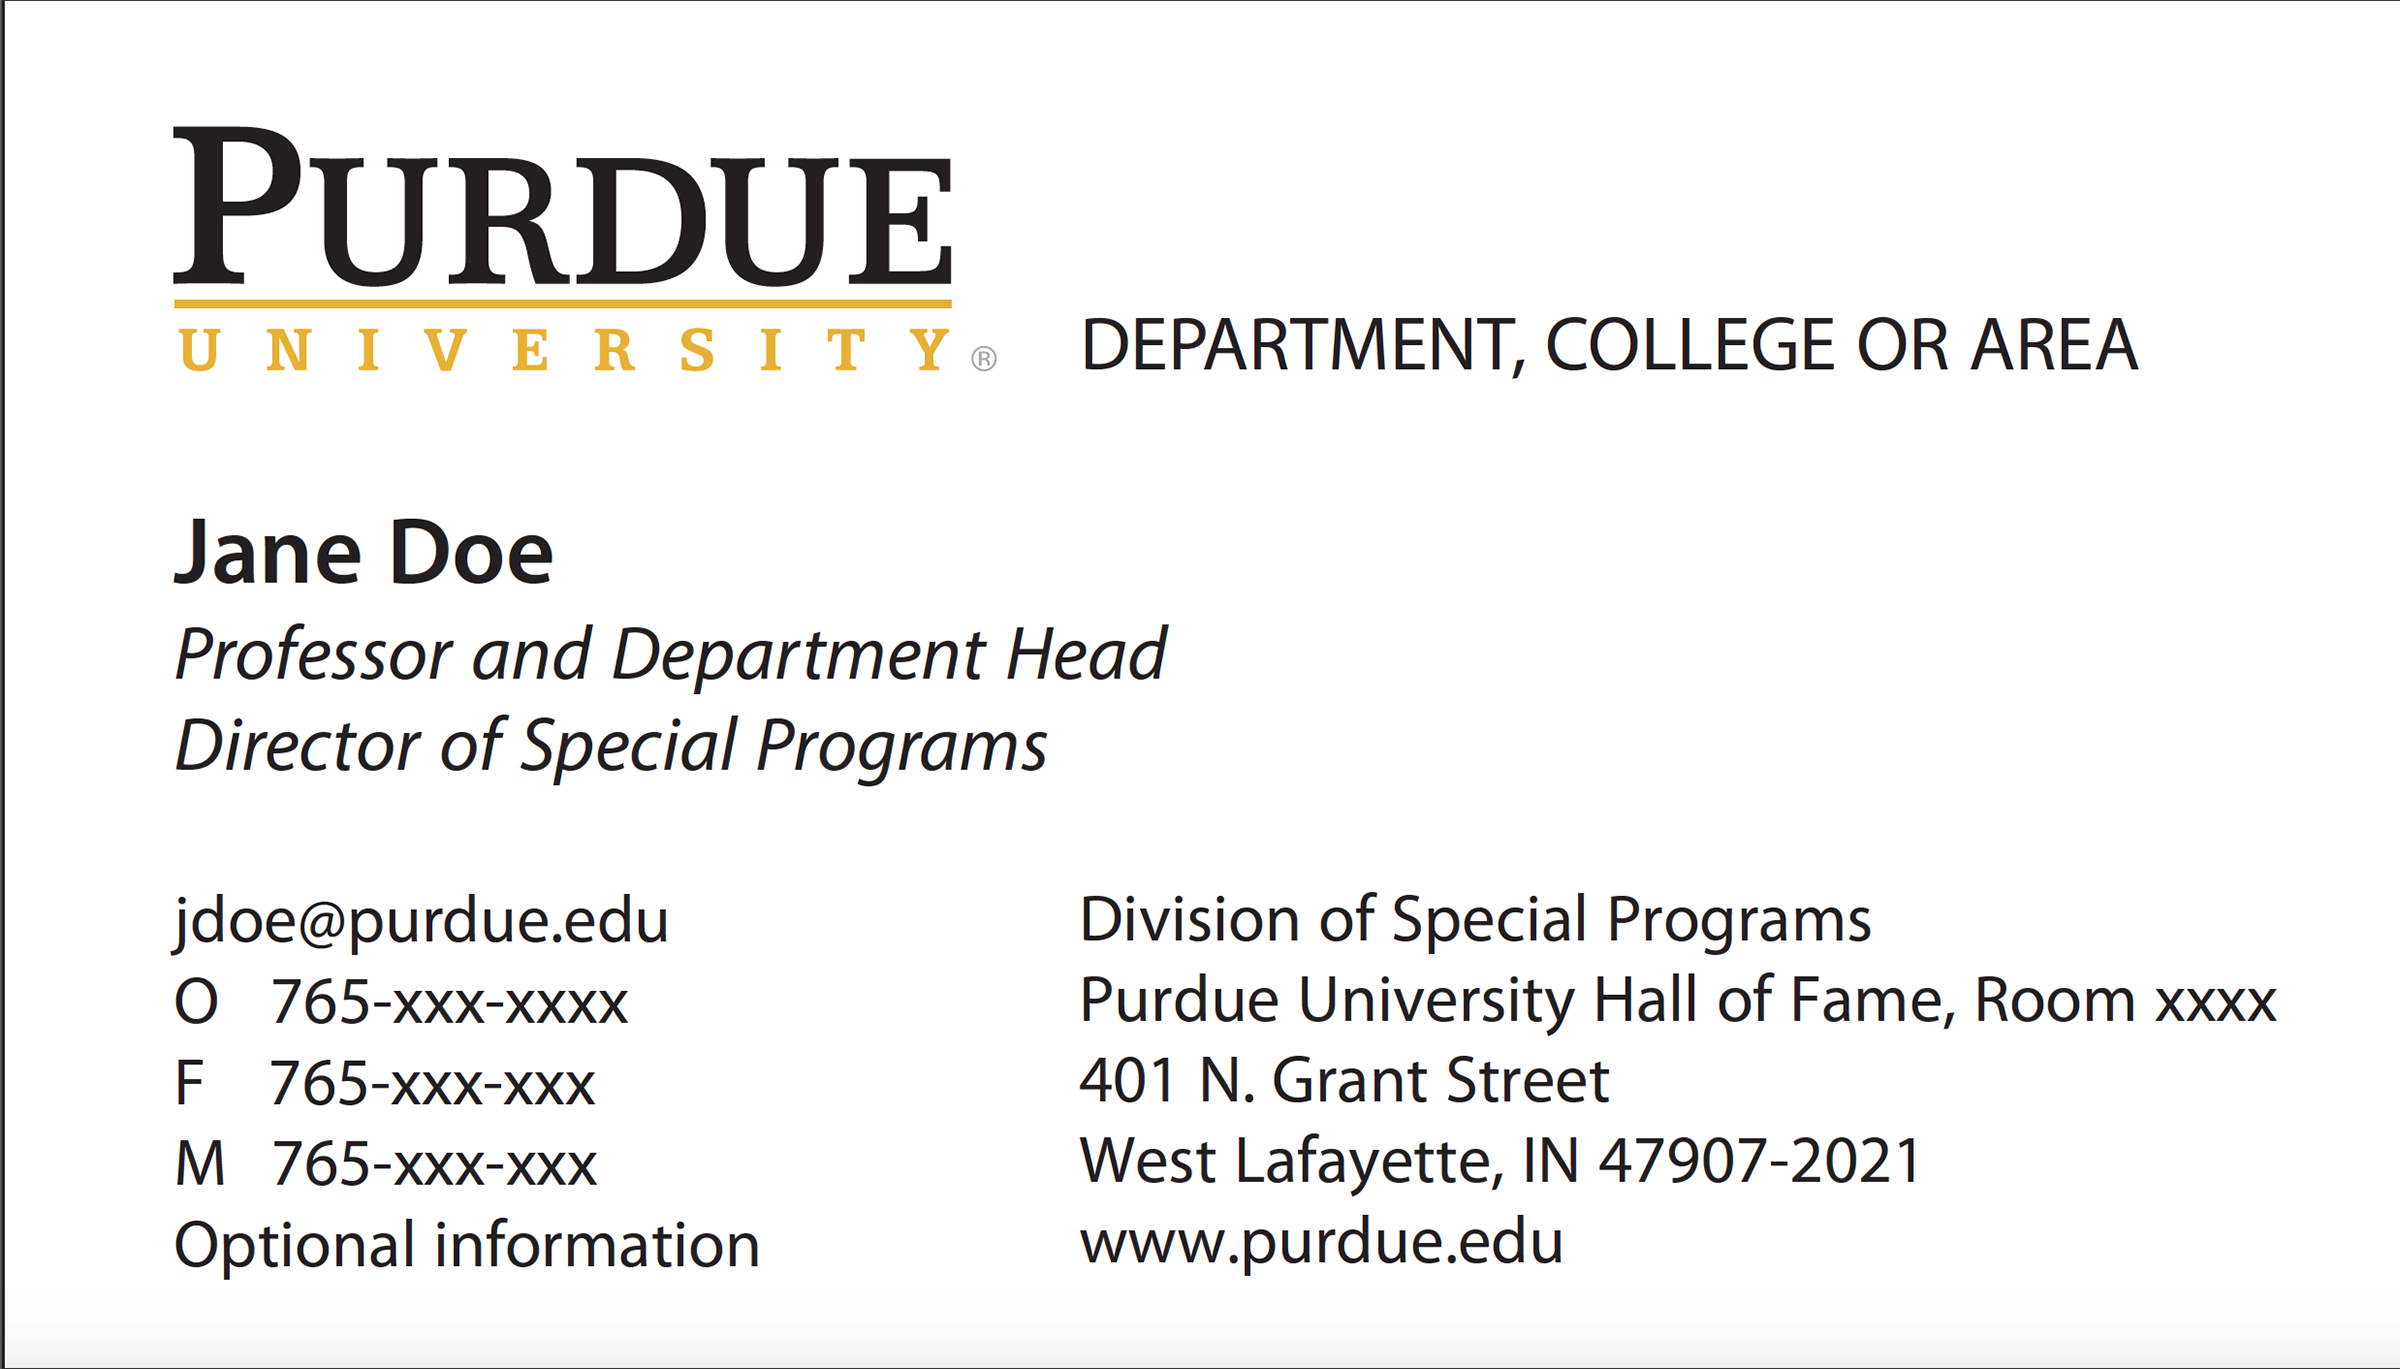 New business card template now online purdue university purdues new standard business card layout fbccfo